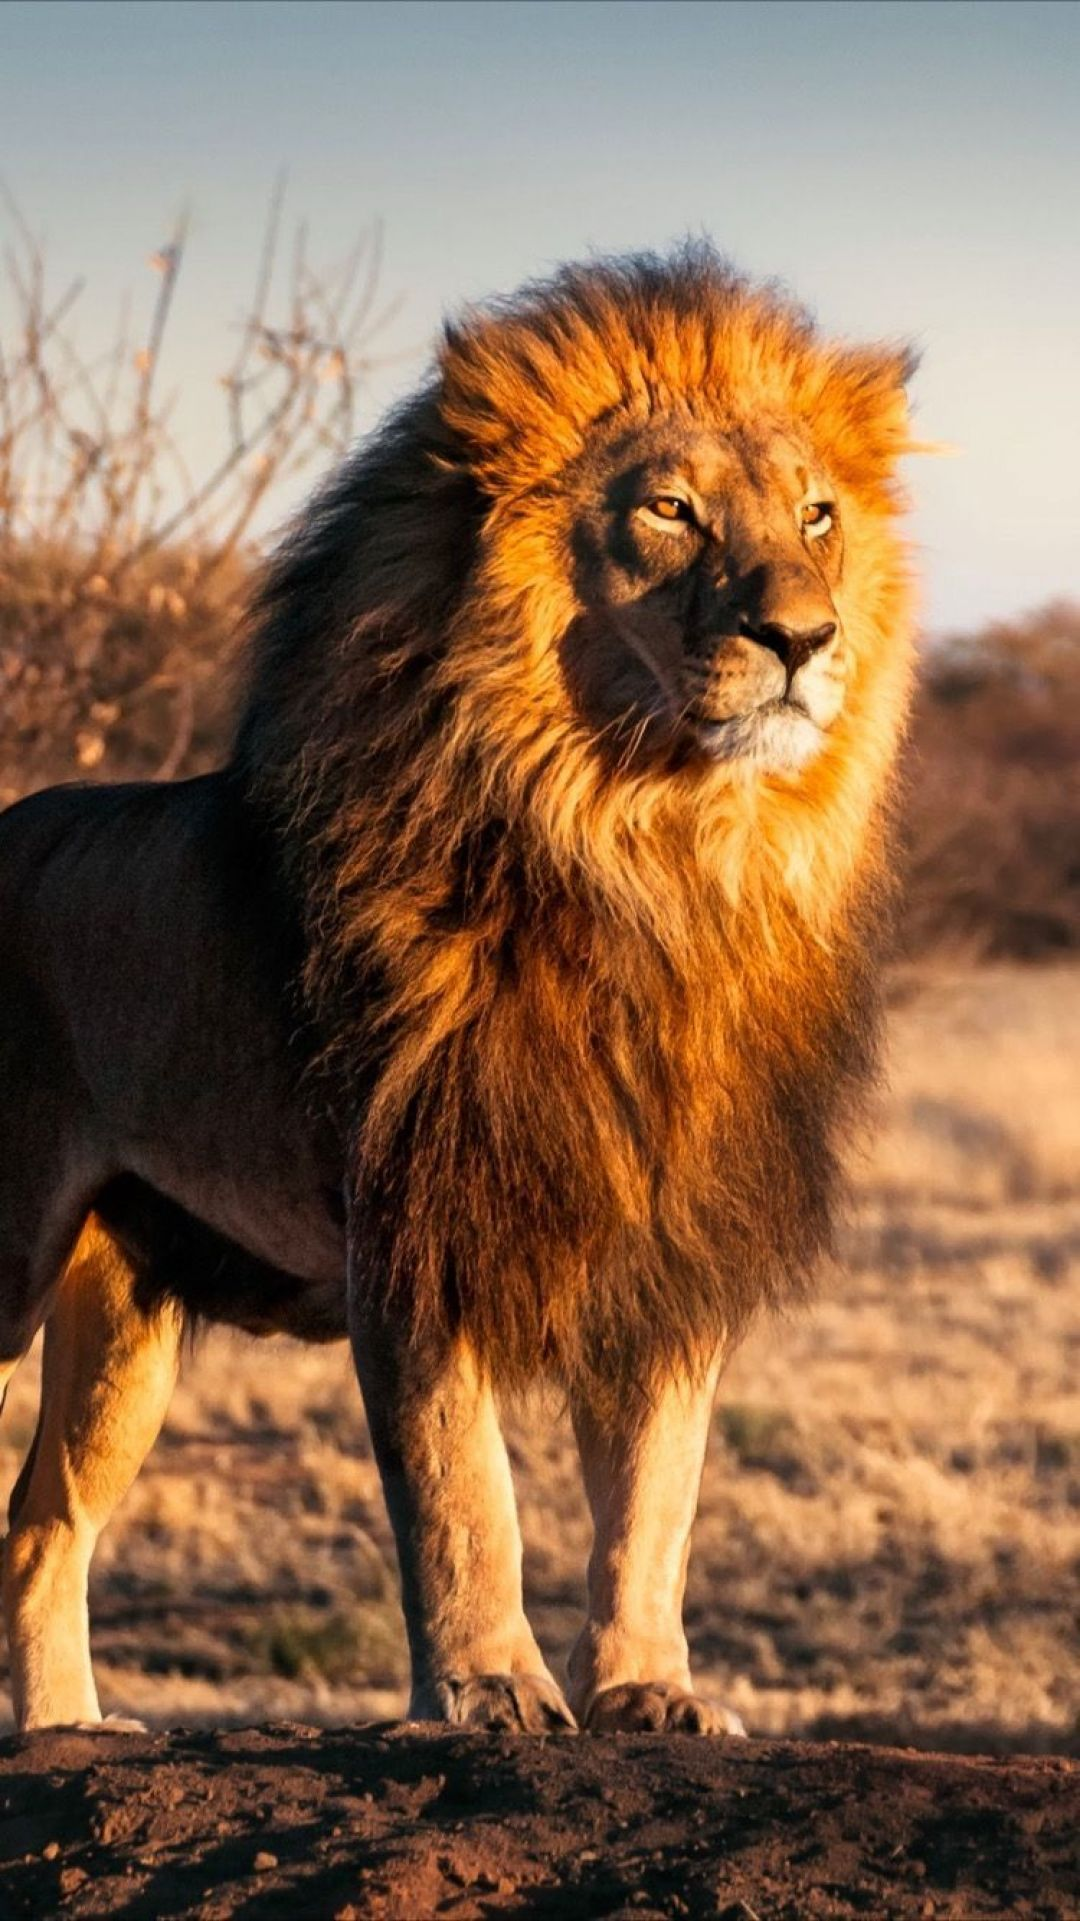 Lion Iphone Android Iphone Desktop Hd Backgrounds Wallpapers 1080p 4k 124952 Hdwallpapers Androidwallp Lions Photos Lion Images Animals Beautiful